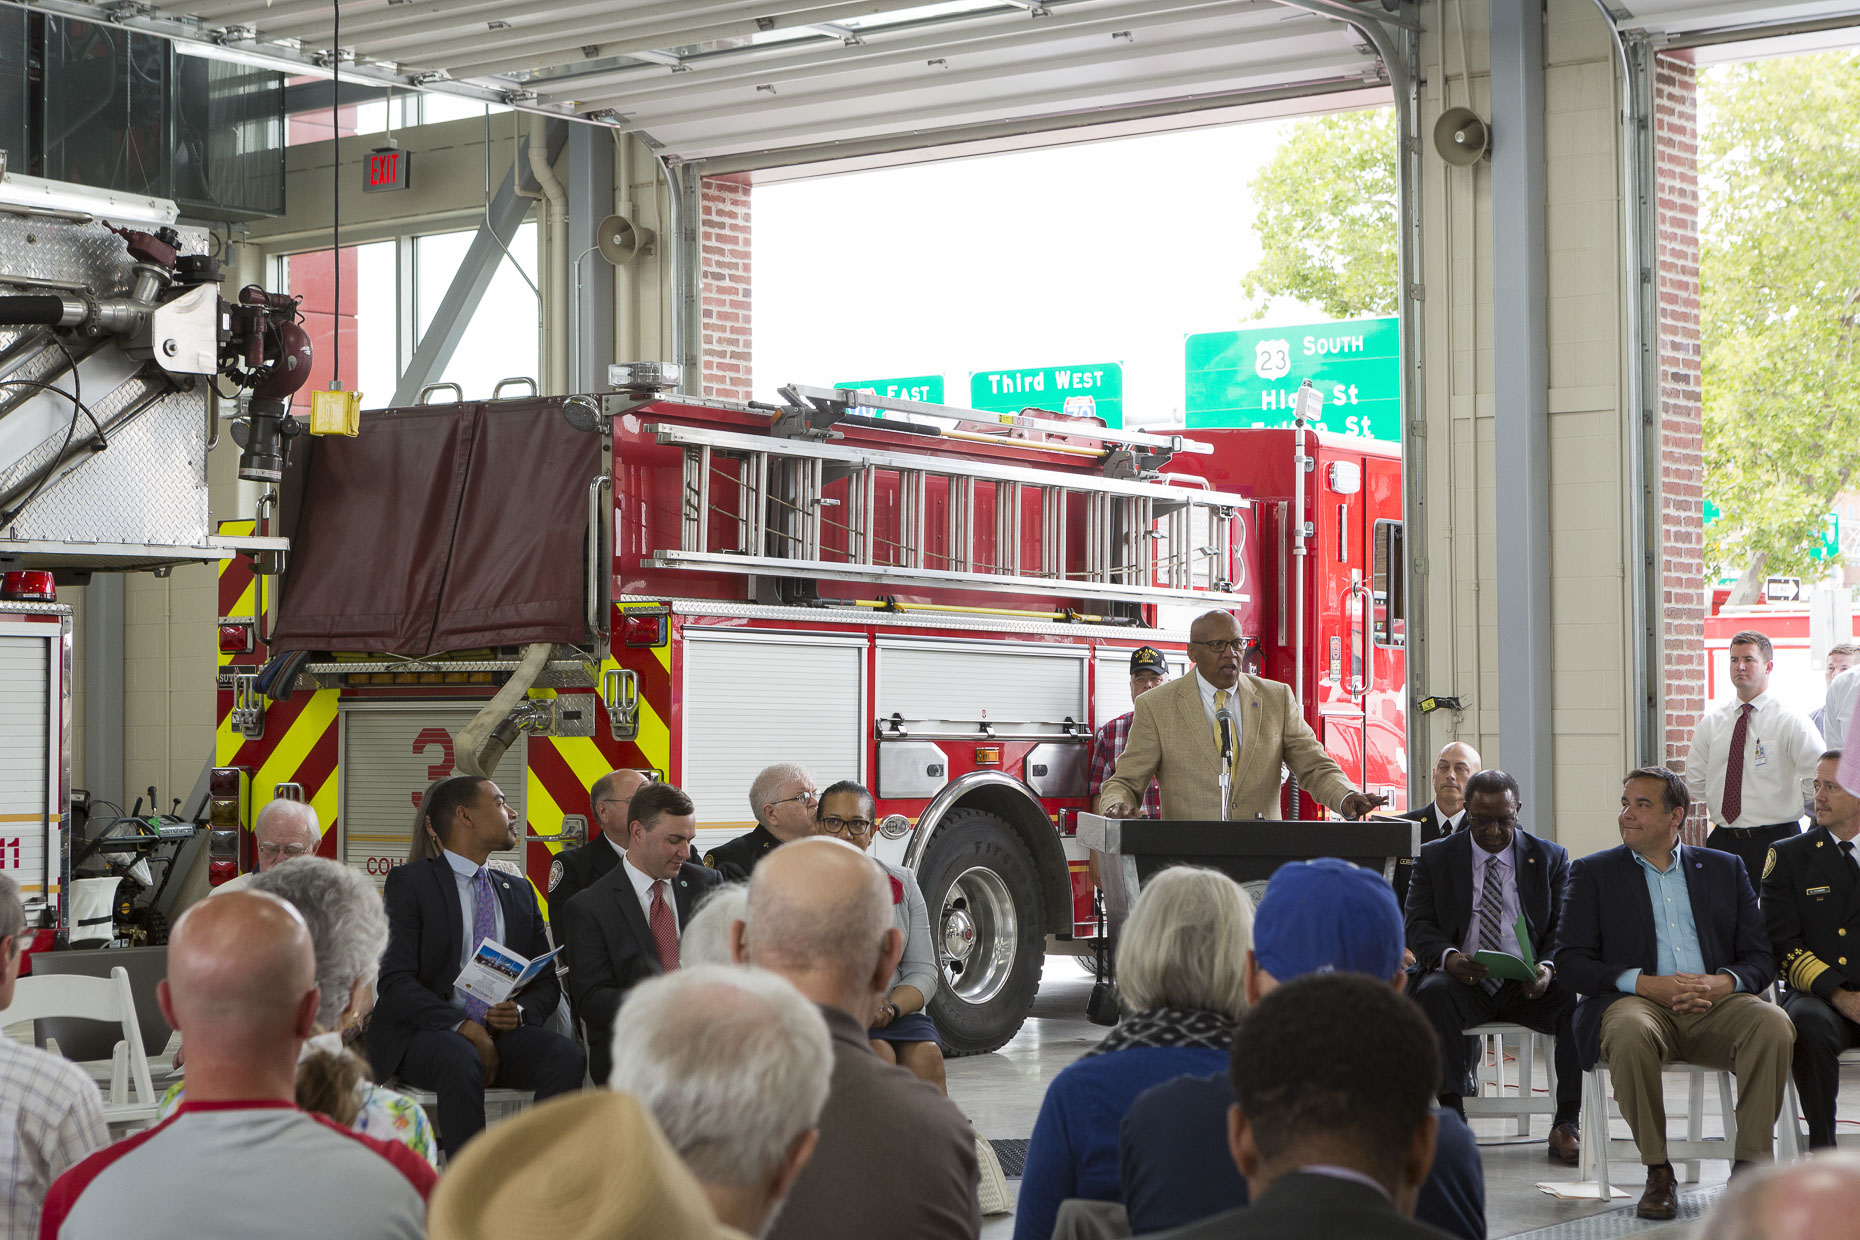 City of Columbus Fire Station No 2 Ribbon Cutting Ceremony Event photographed by Lauren K Davis